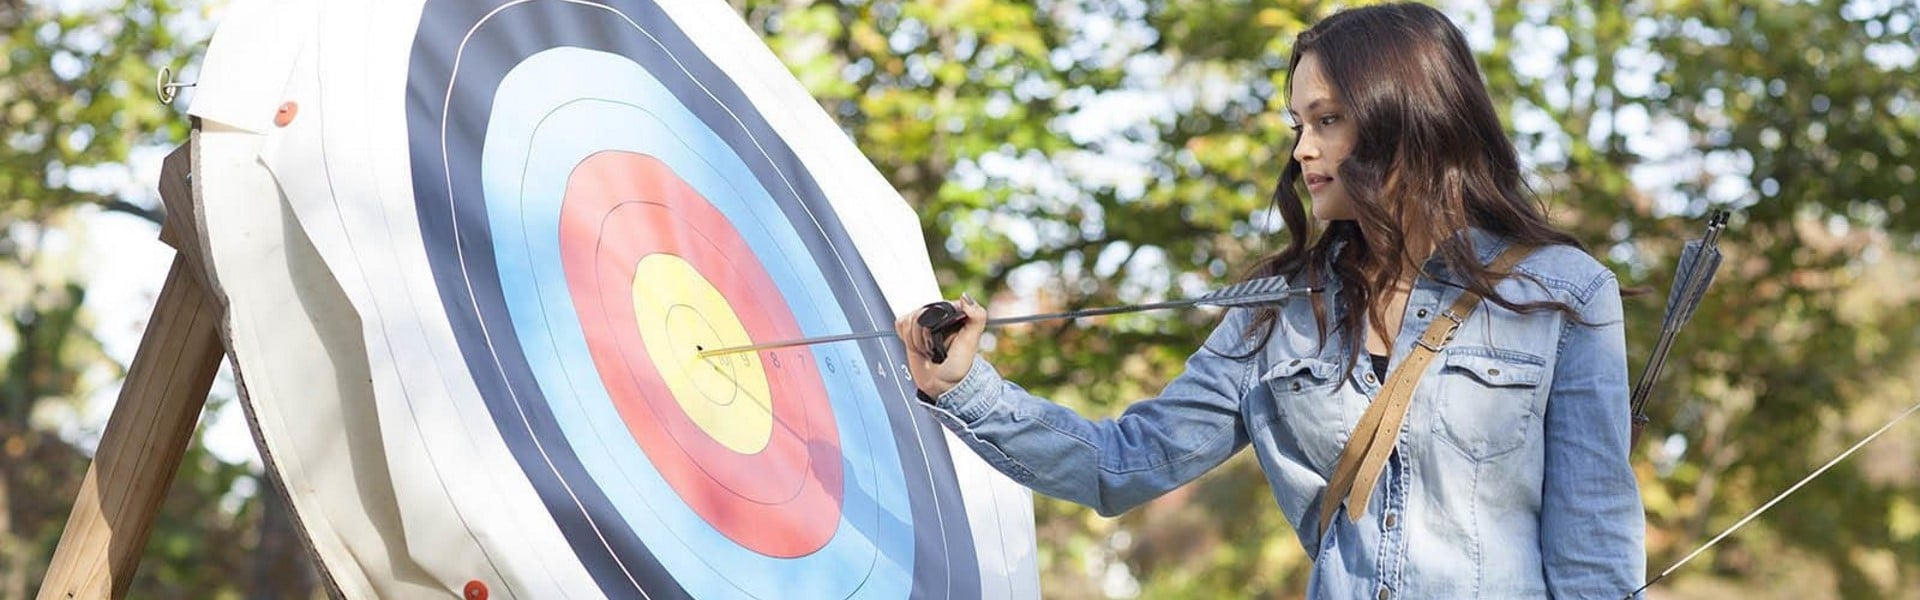 Best Archery Targets Reviewed in Detail